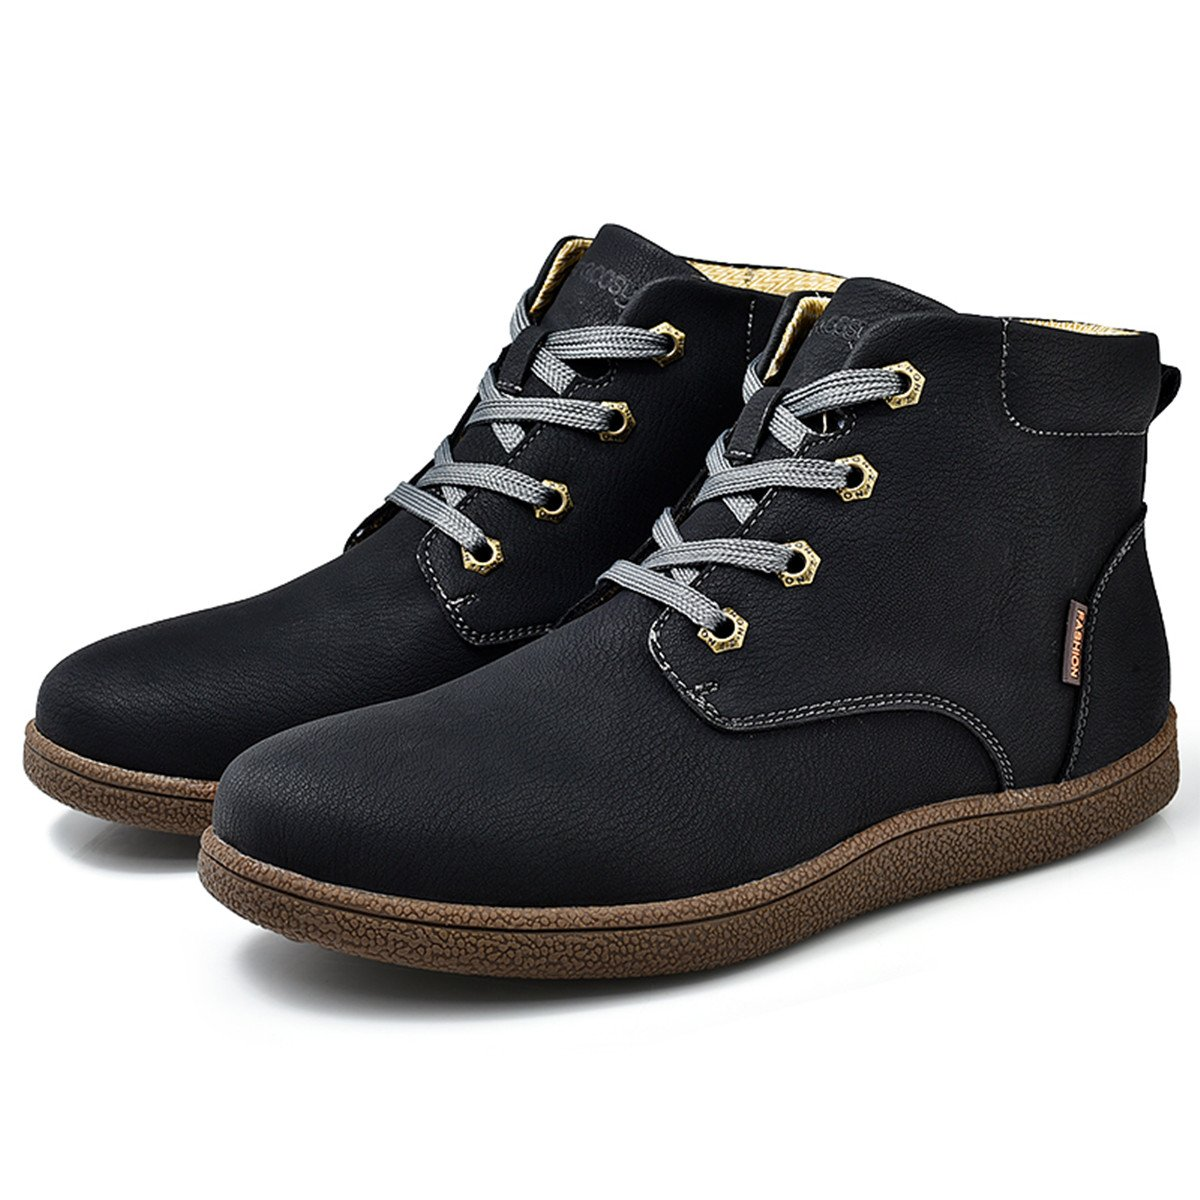 Gracosy Martin boots for Men, Men's Fashion Leather Lace up Boots Winter Cotton Lining Shoes Waterproof Boots Black Tag 43 by Gracosy (Image #2)